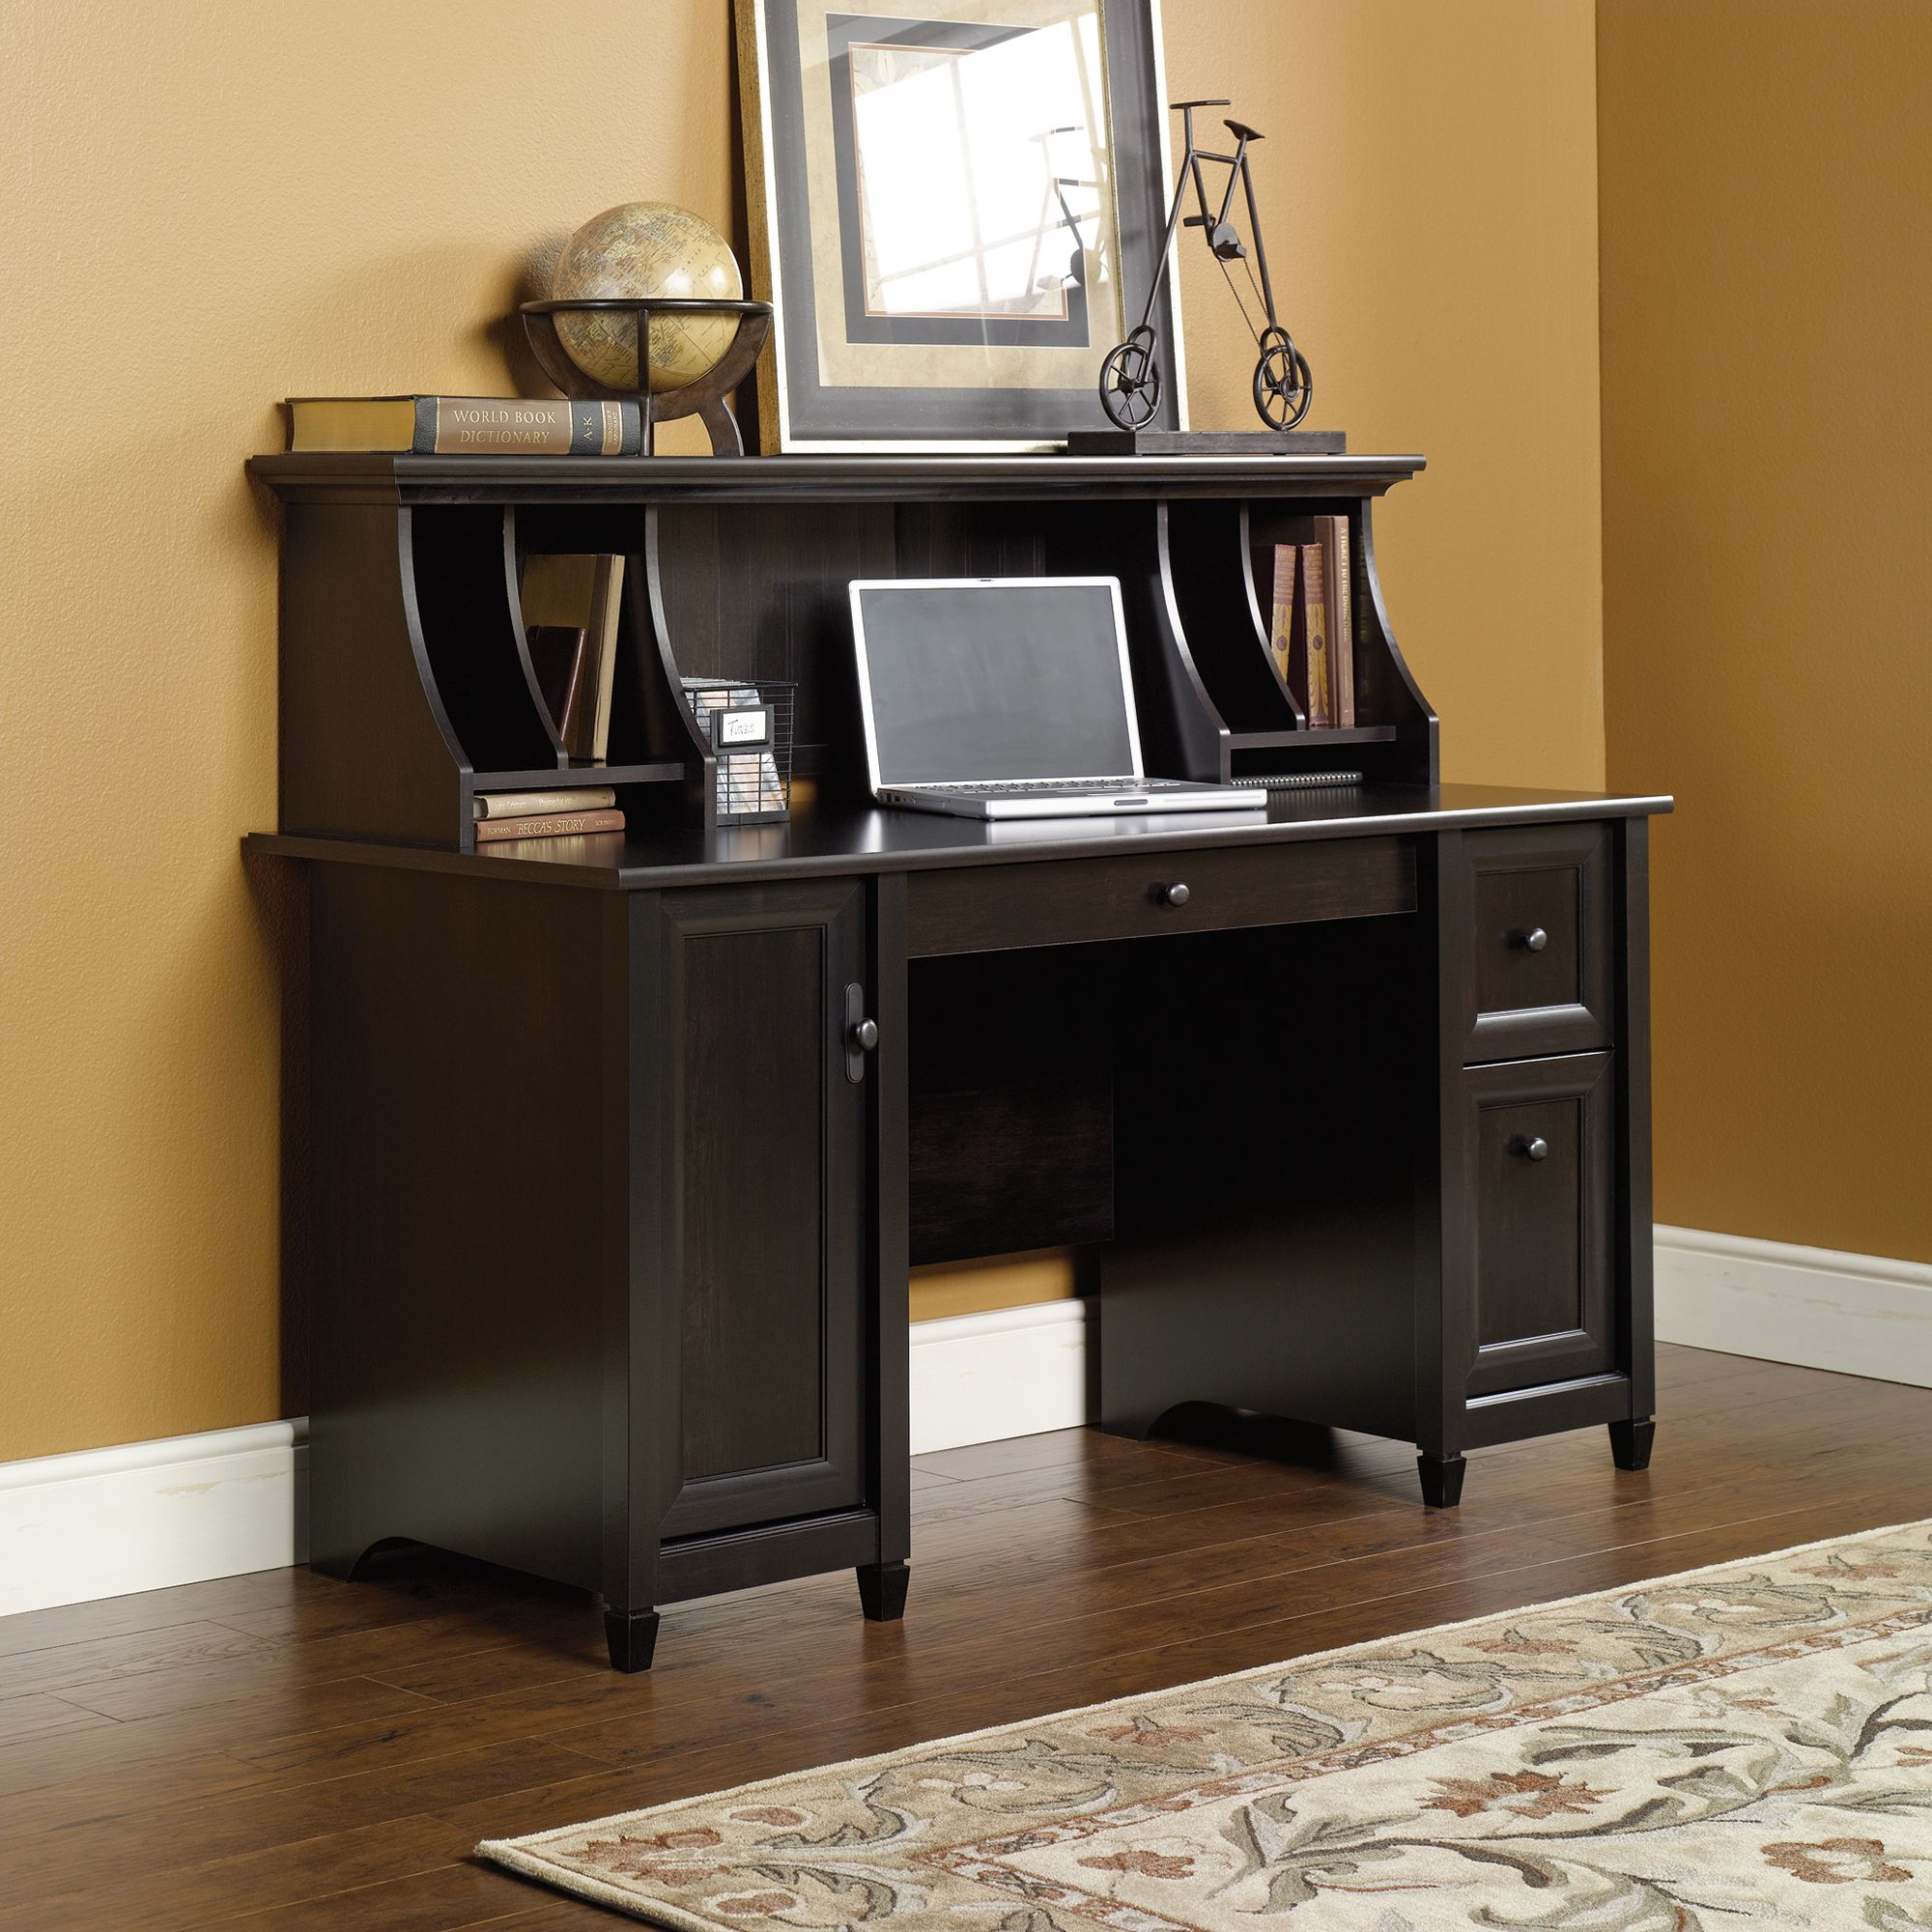 furniture single small optional desk cfm eagle coastal pedestal product customizable hutch with master hayneedle computer